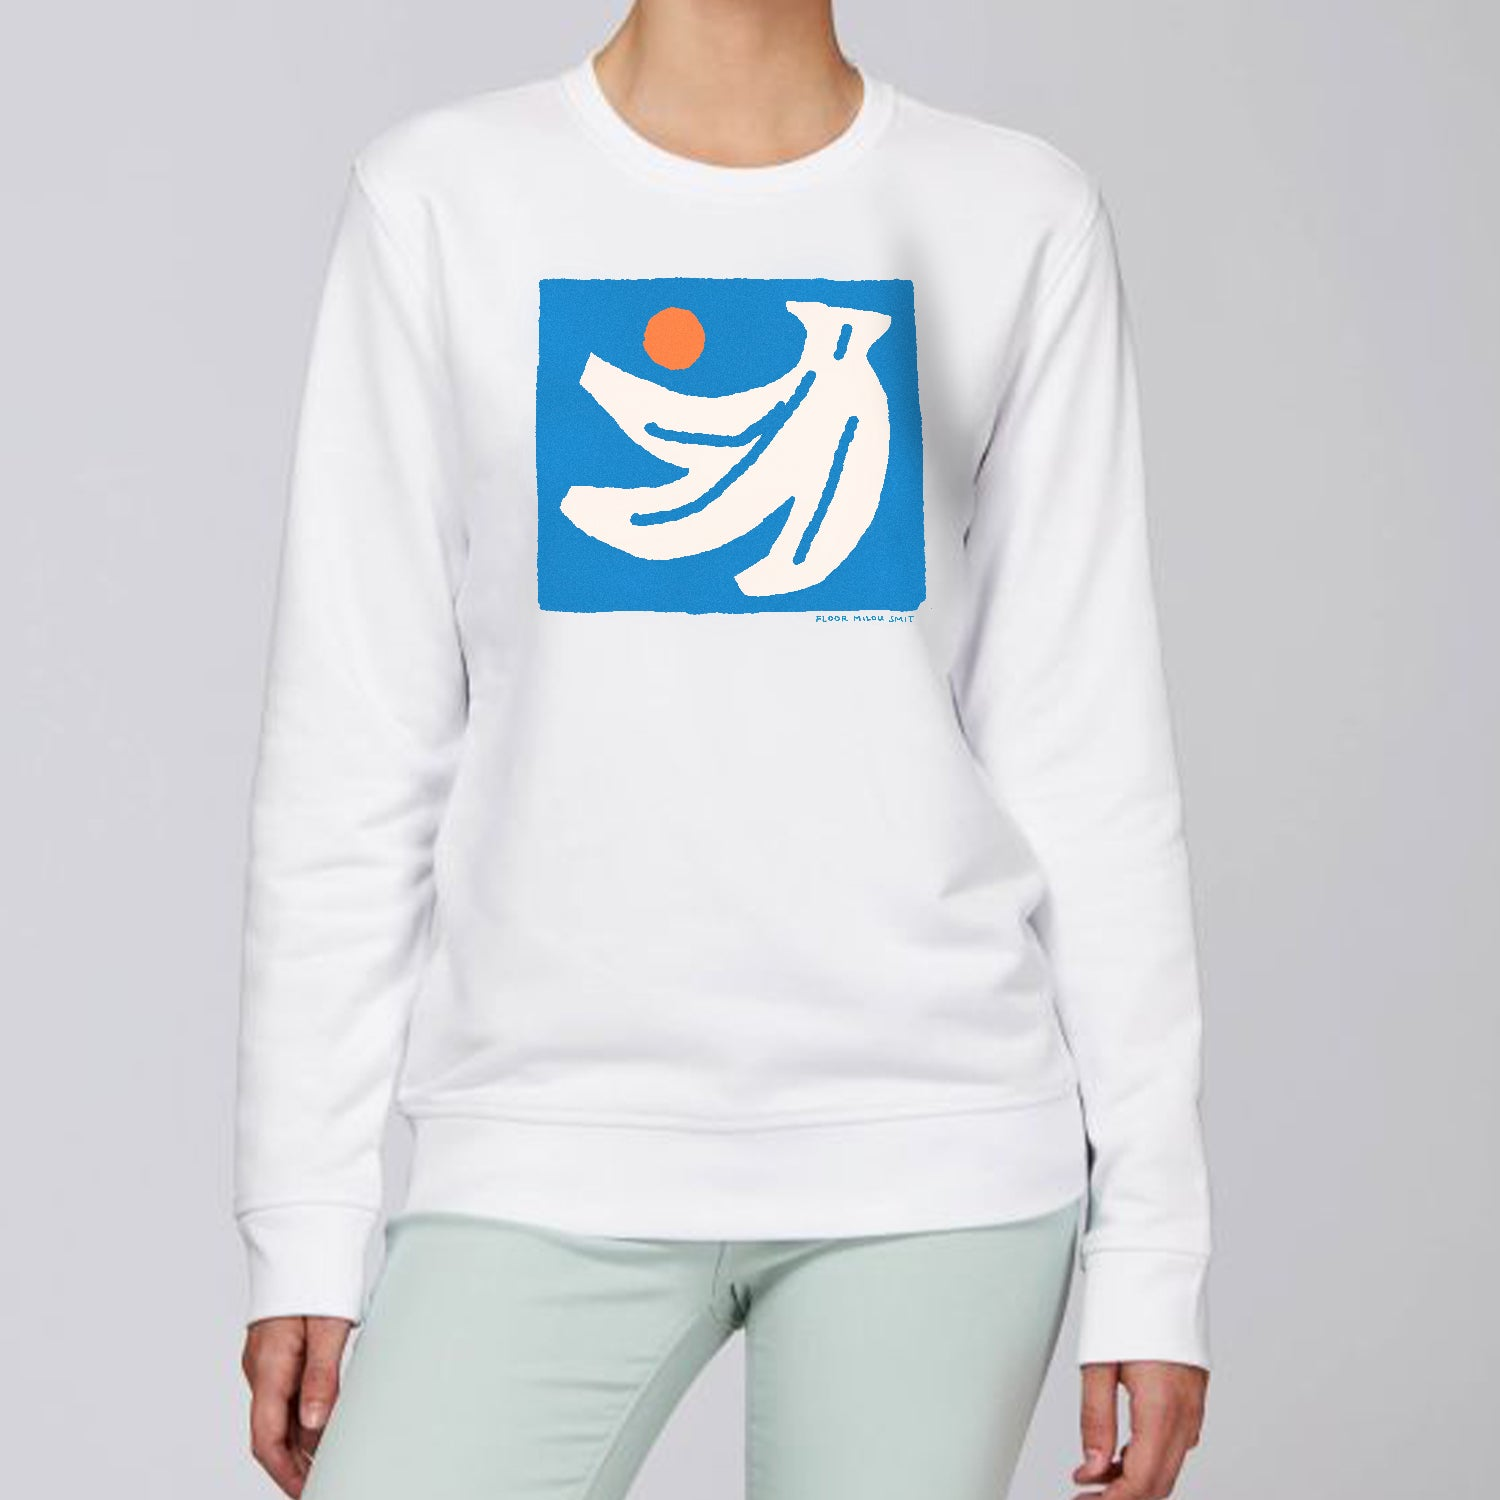 Photo of a model wearing a white sweater. The print on the sweater is an off-white hand of bananas with an orange circle next to them on a blue square background.